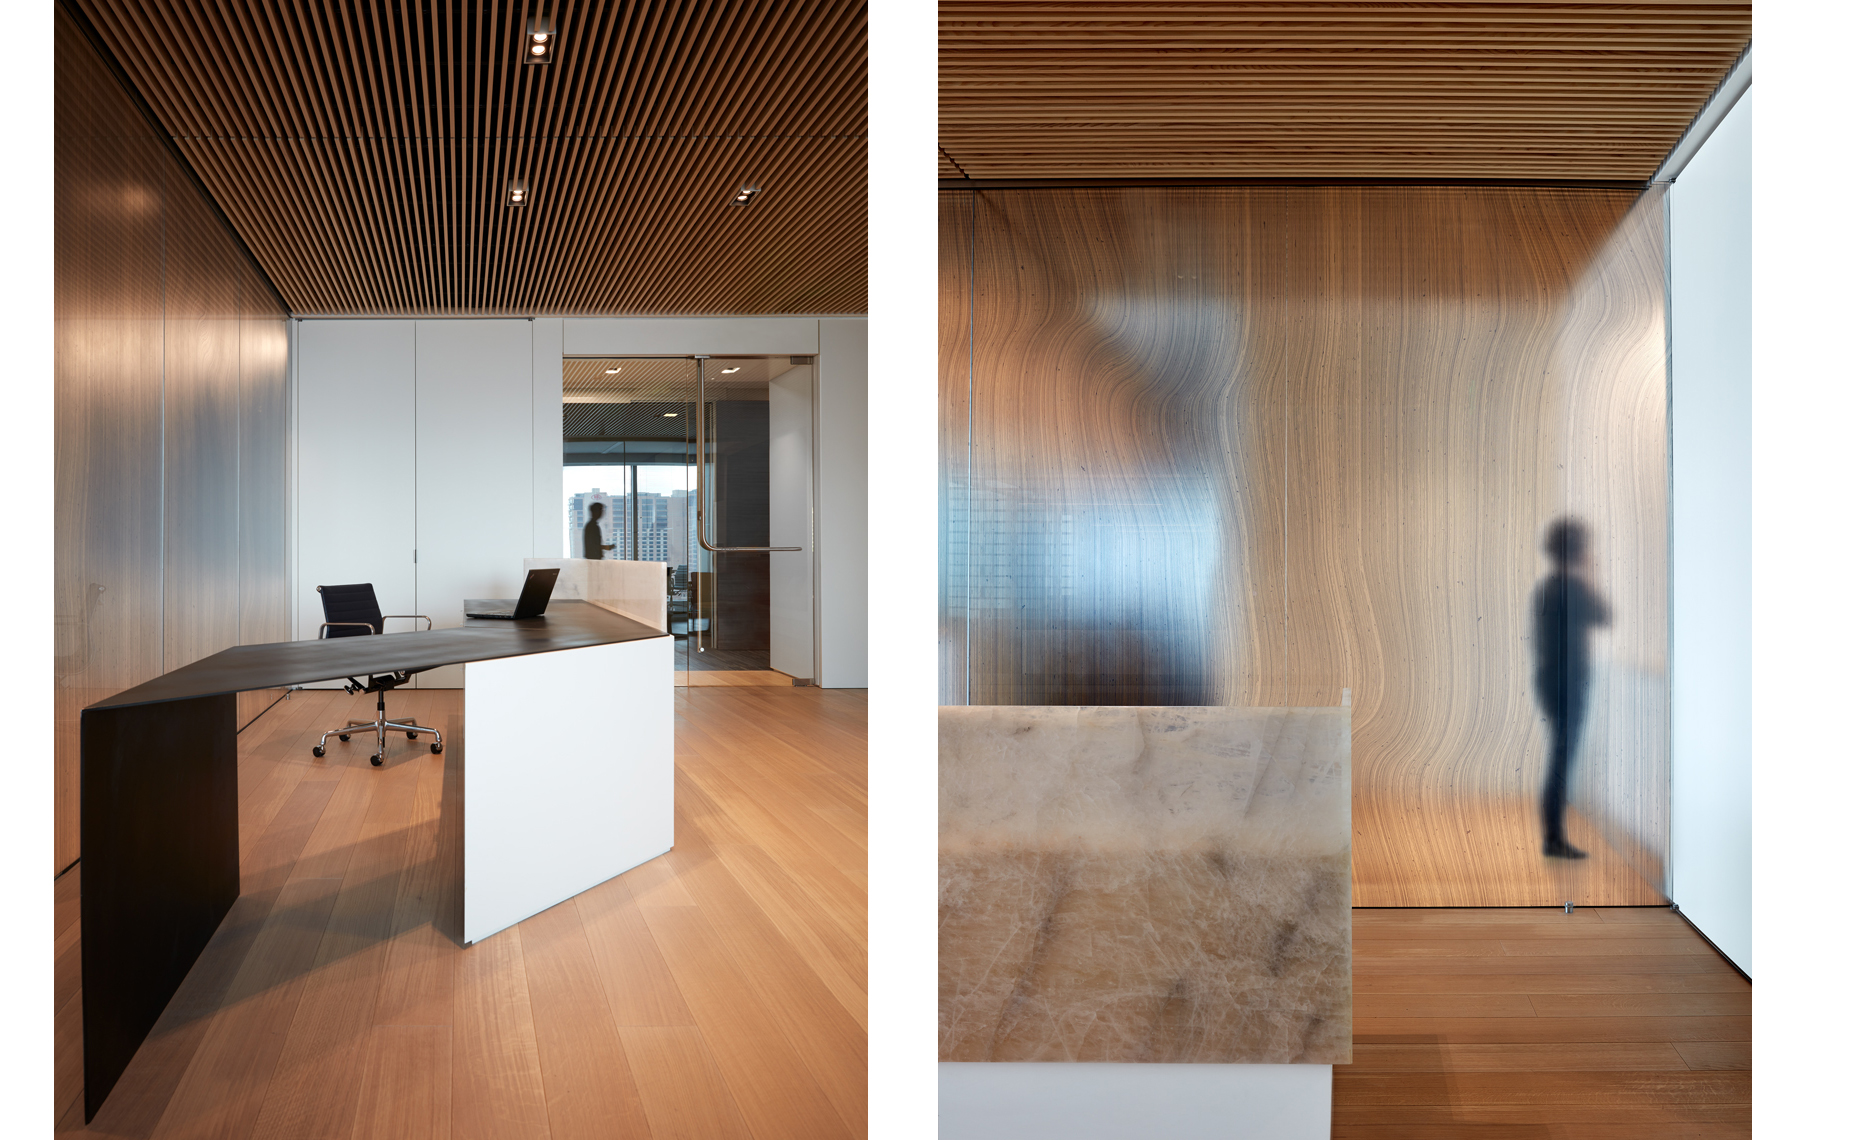 Aiken Gump law firm Austin texas Gensler dror baldinger FAIA photography wood ceiling floors  textured glass